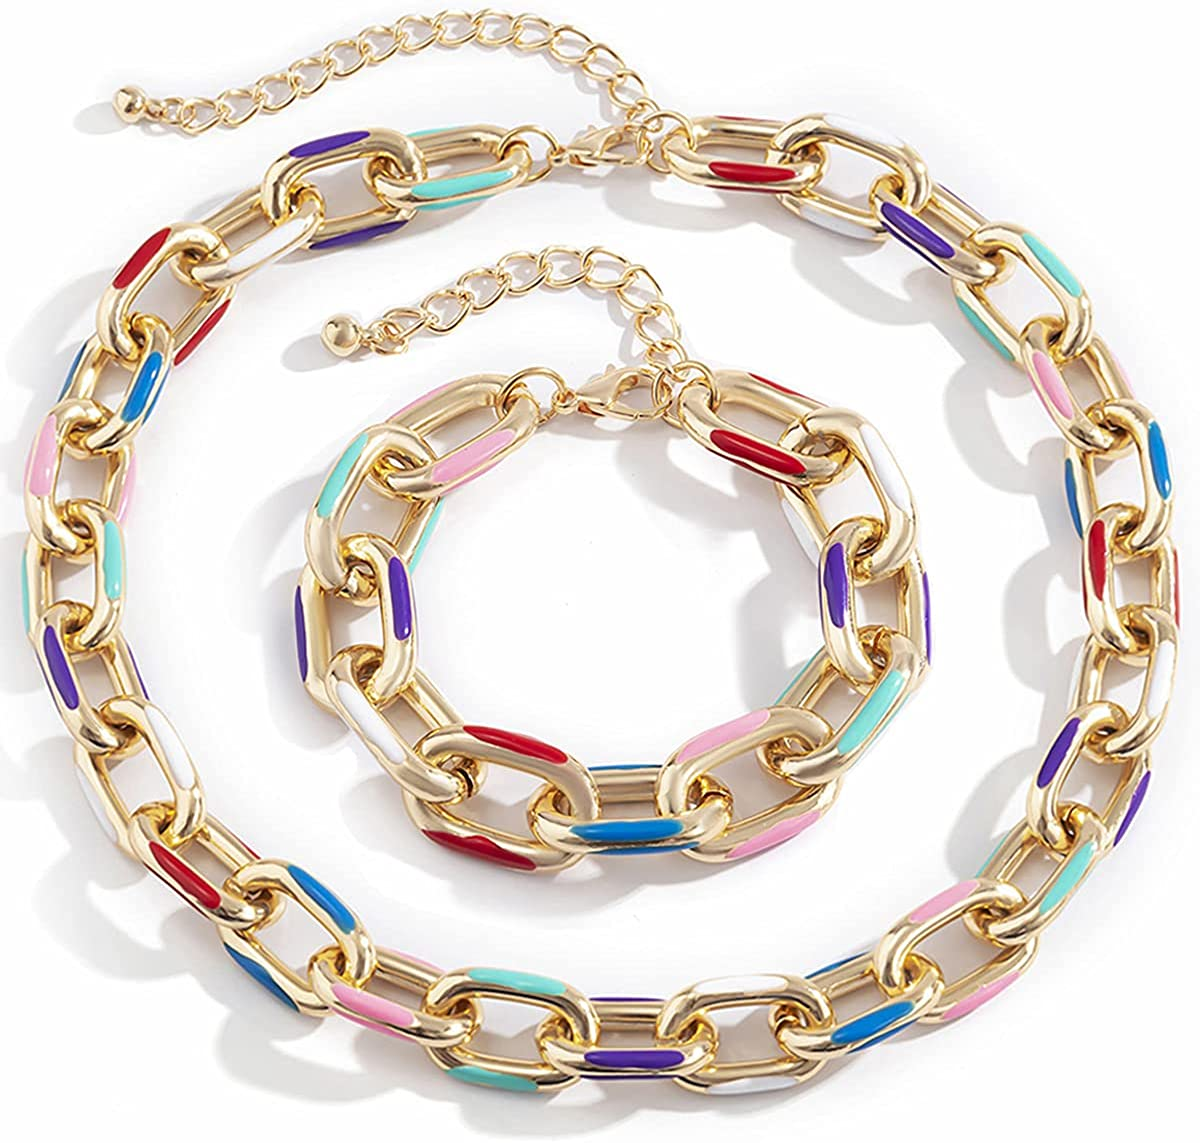 2Pcs Cuban Link Chain Choker Necklace Set for Women,Hip hop Colorful Painted Aluminum Chain Chunky Collar Necklace Bracelet,Thick Chain Statement Necklace Party Jewelry Set